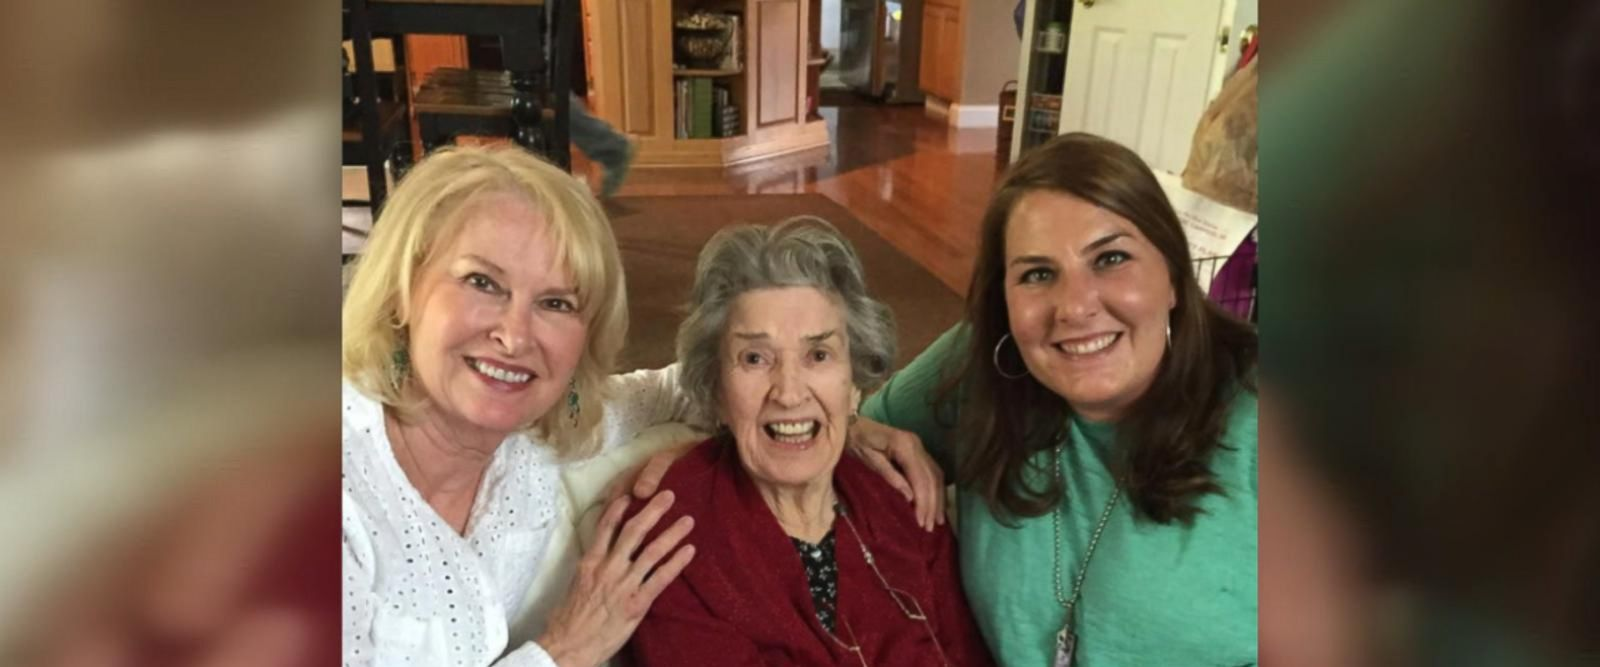 Melissa Falter, granddaughter of the late Jean Oddi, penned an obituary on behalf of the carefree 91-year-old before her death.